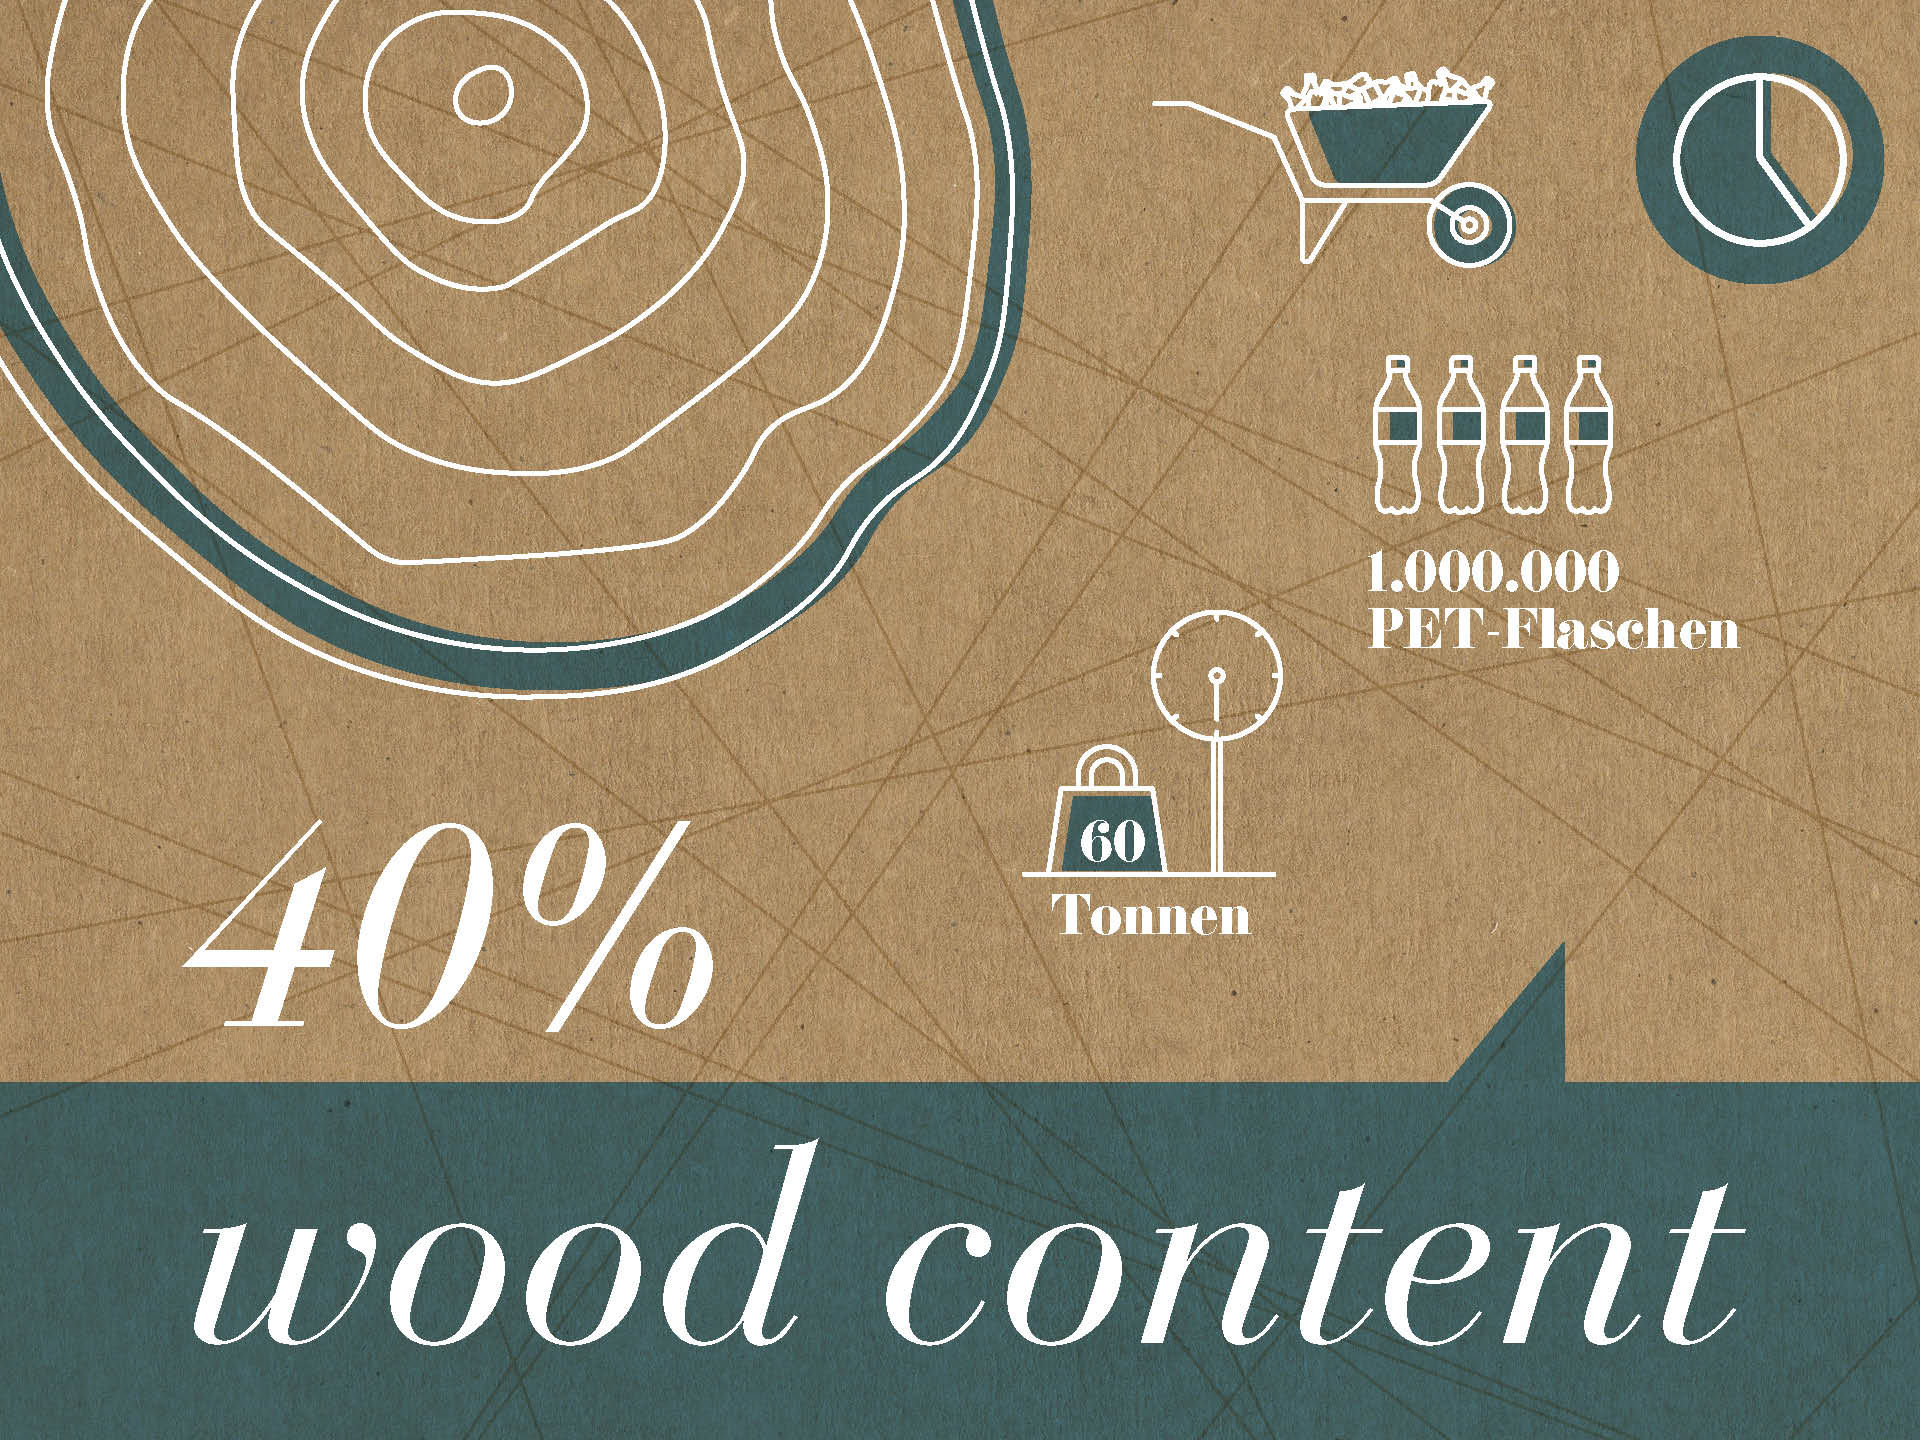 40% wood content